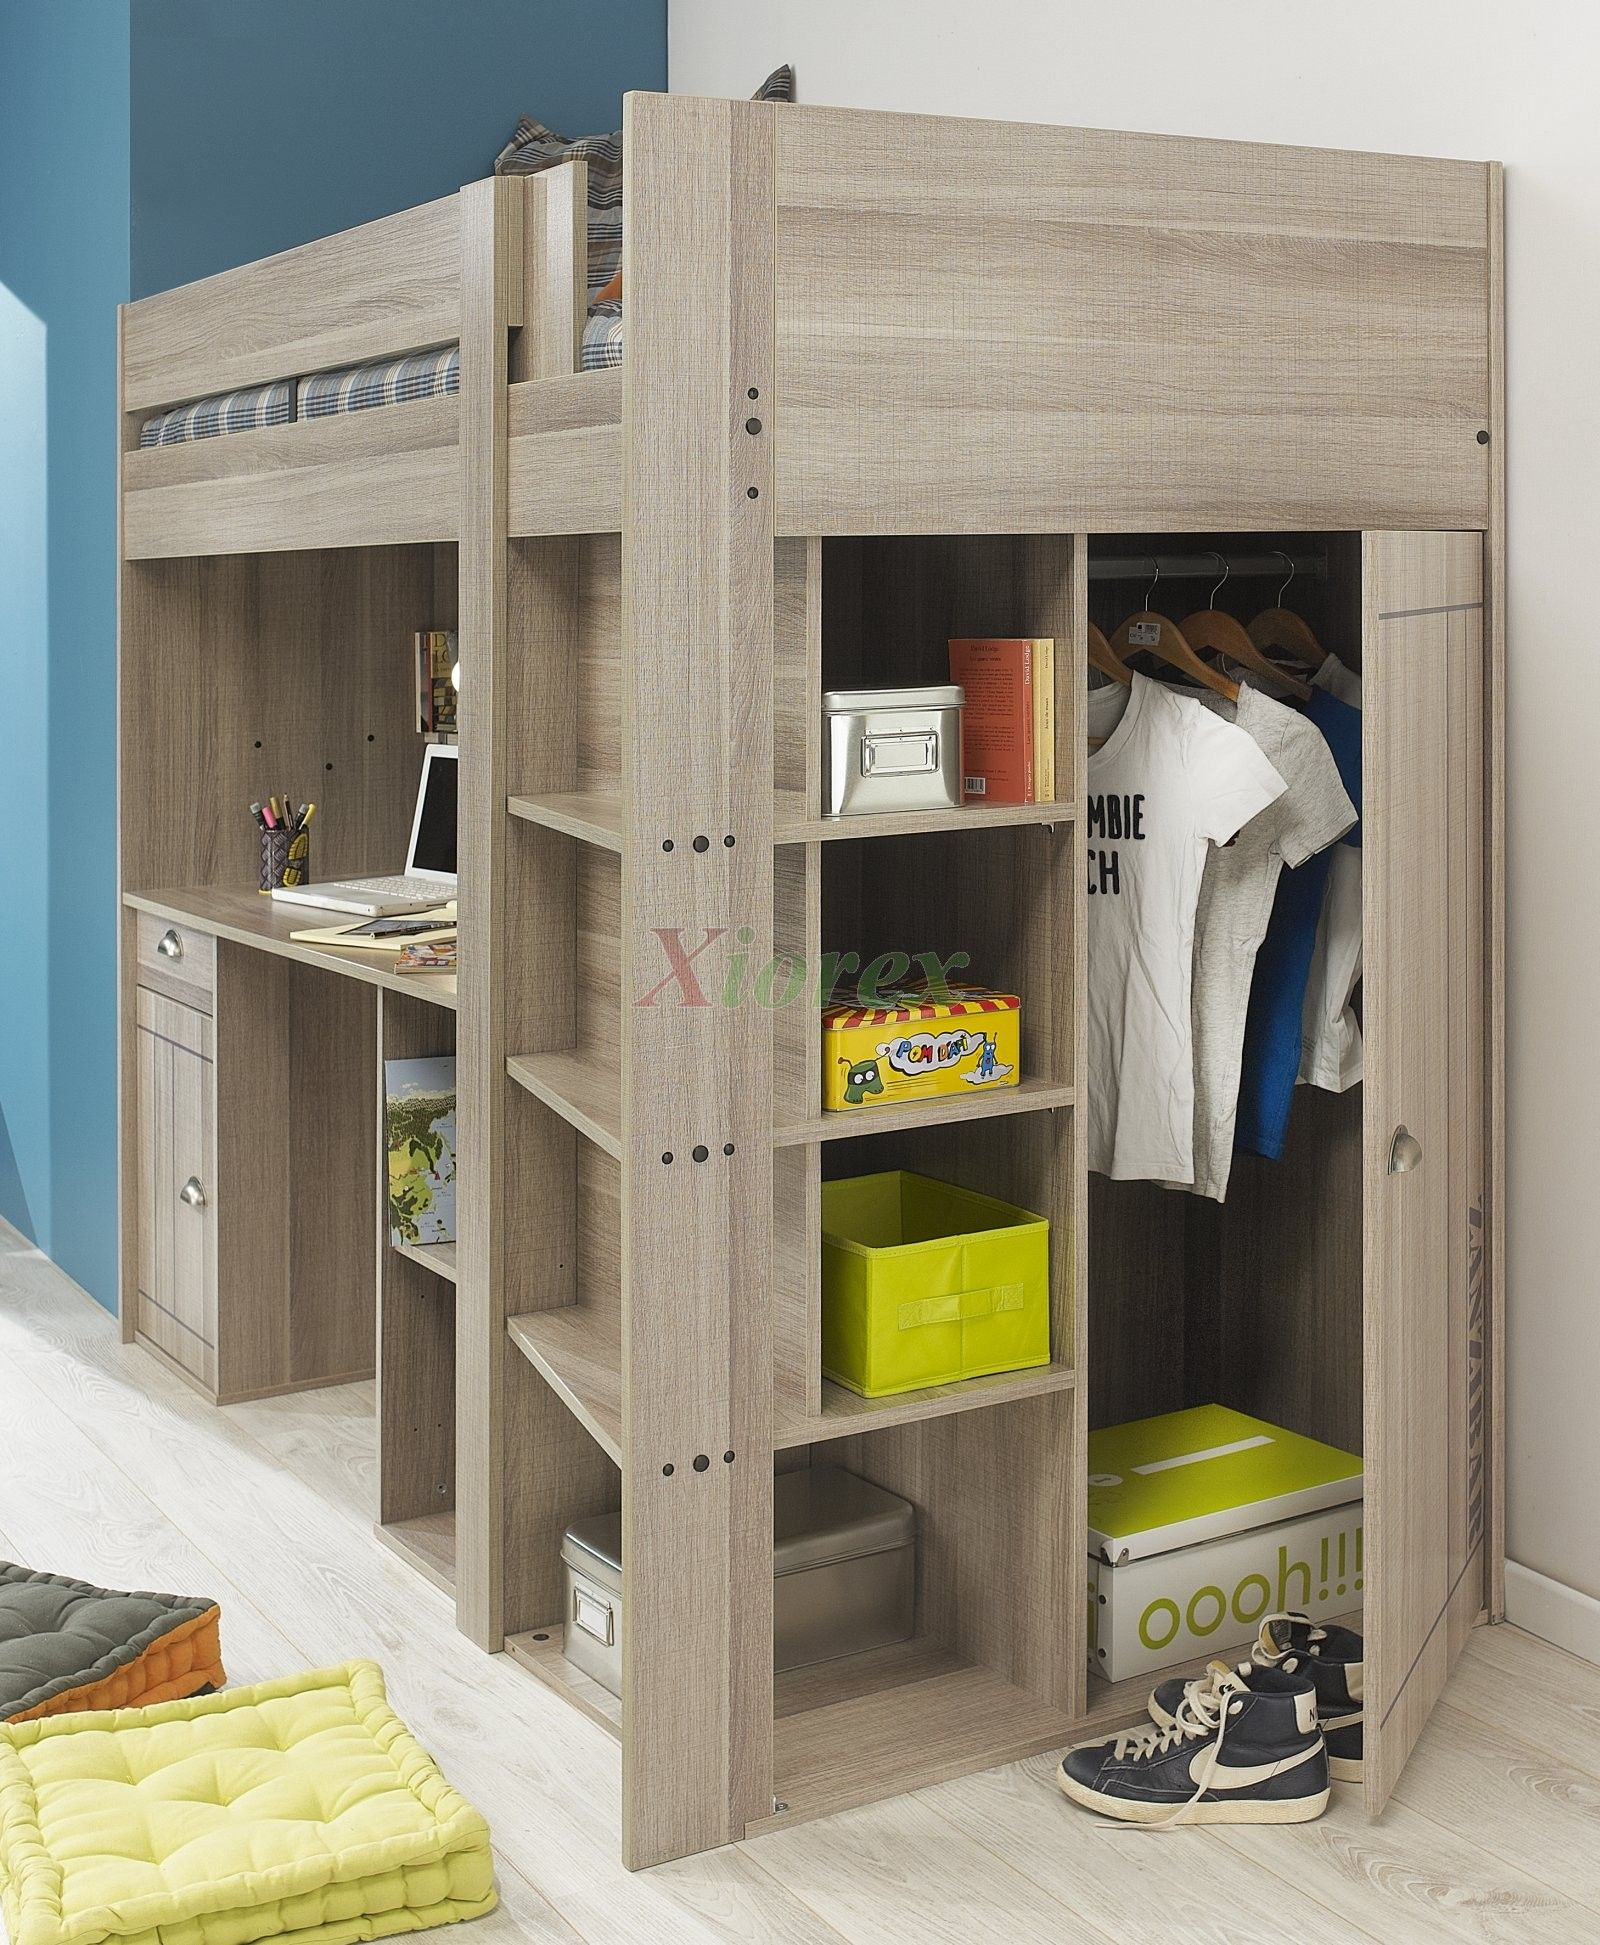 Bunk beds for adults with desk - Gami Largo Loft Beds For Teens Canada With Desk Closet Xiorex Gami Largo Teen